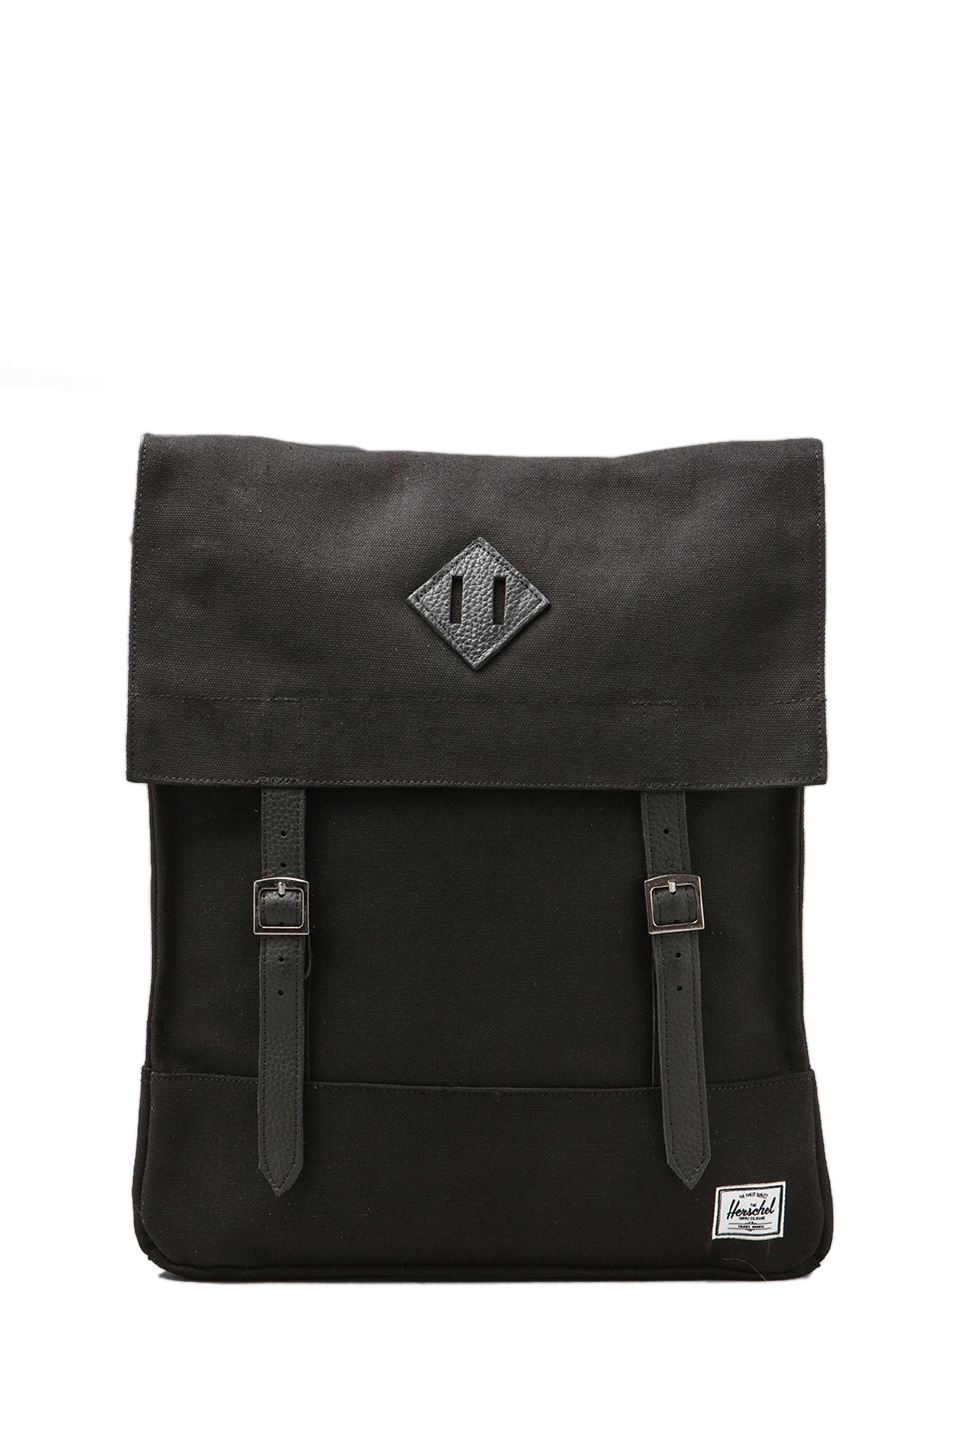 Herschel Supply Co. Canvas Collection Survey Backpack in Black